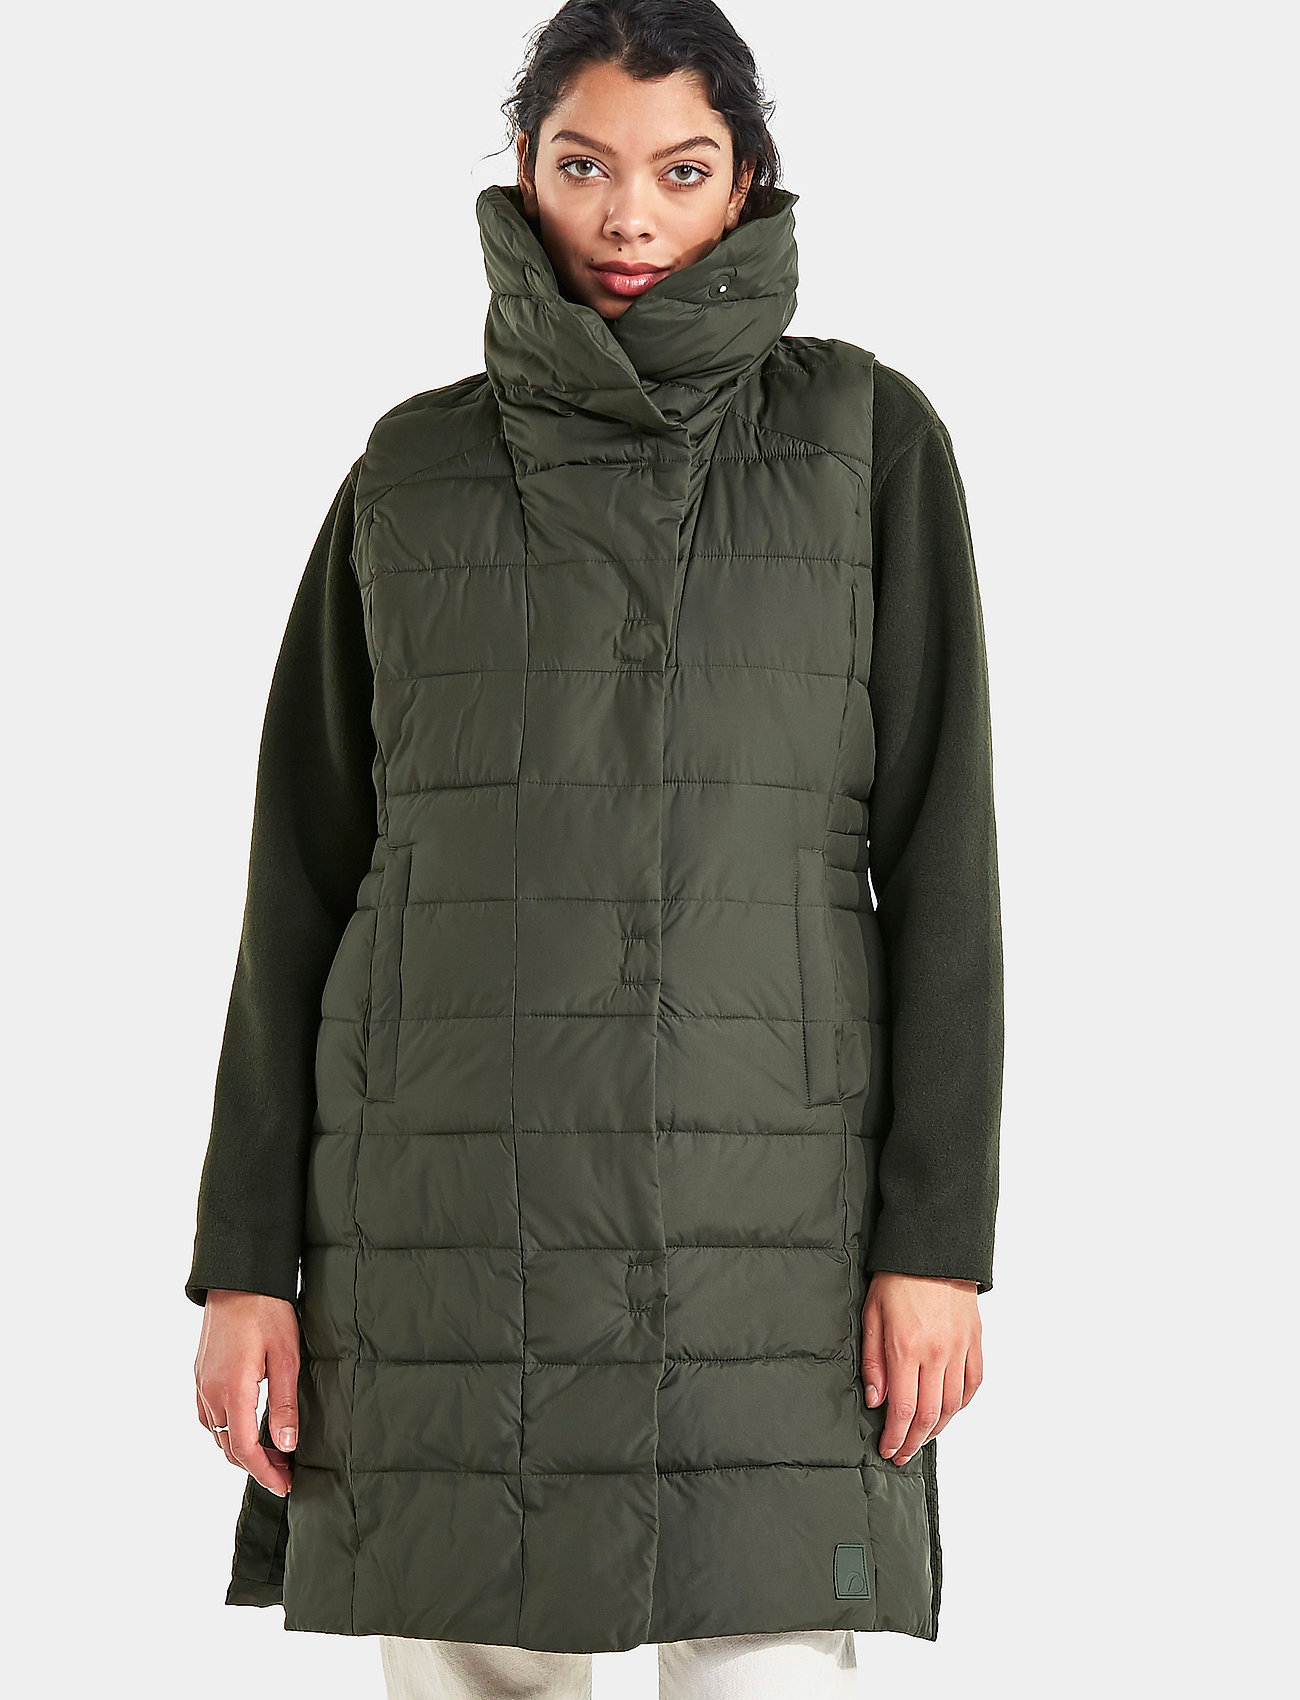 Didriksons - MY WNS VEST - puffer vests - forest green - 0